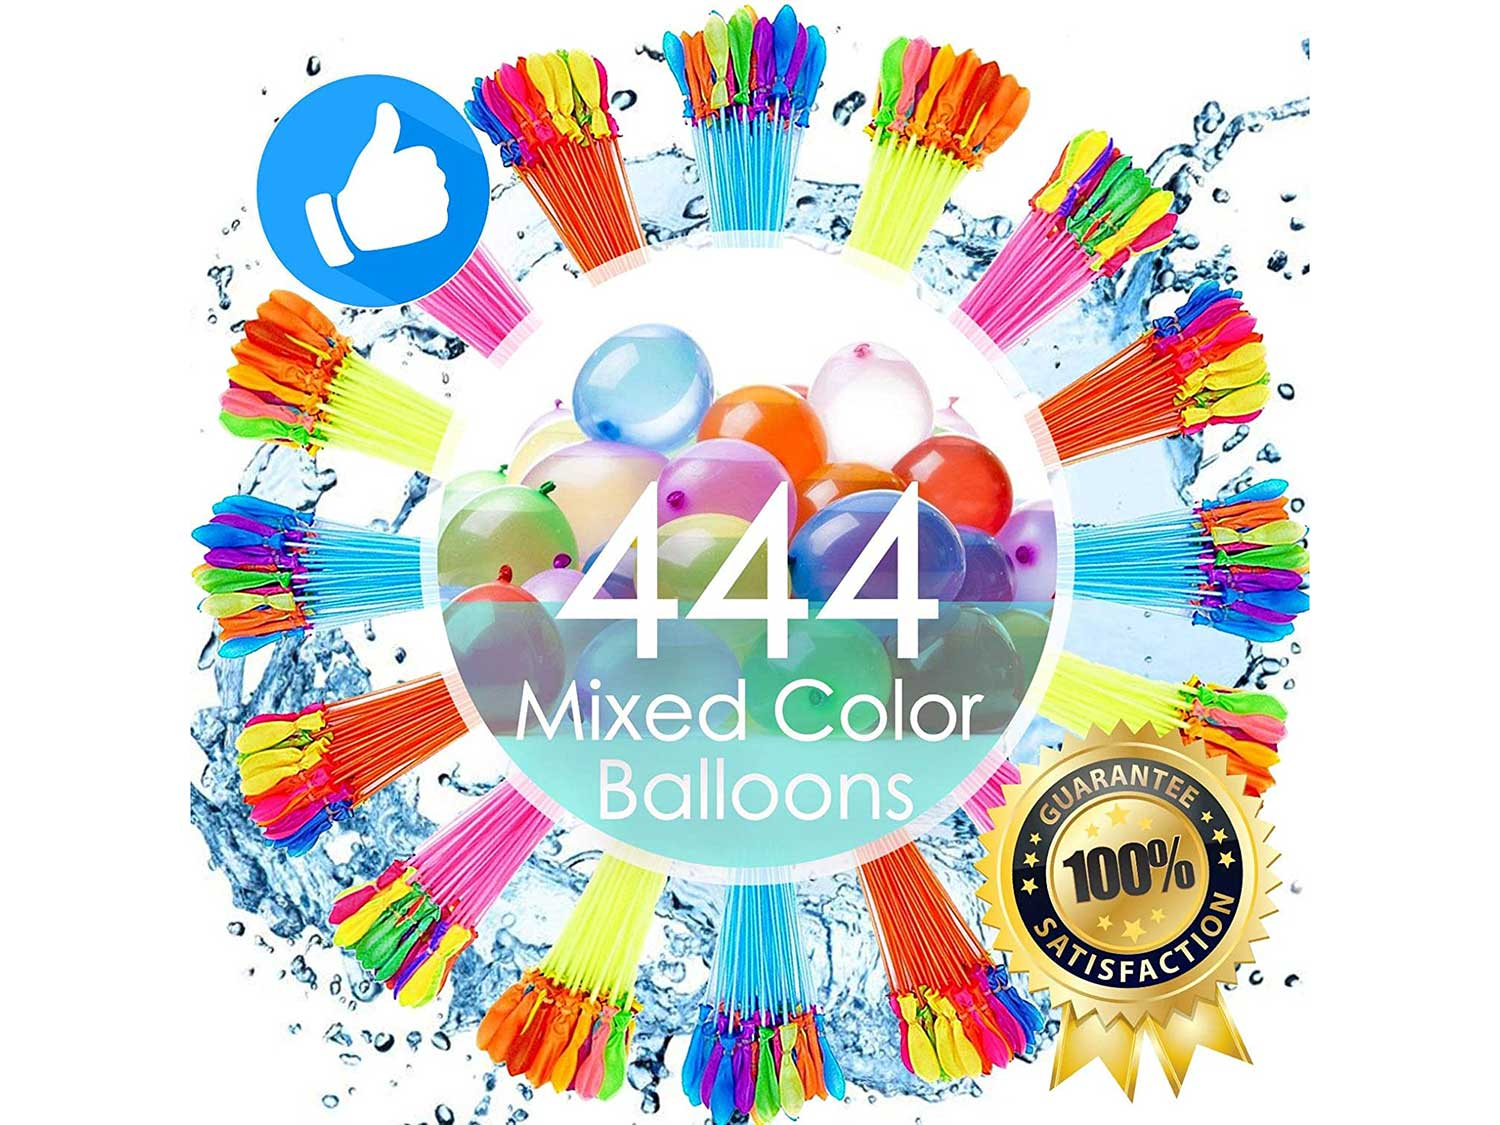 FEECHAGIER Water Balloons for Kids Girls Boys Balloons Set Party Games Quick Fill 444 Balloons 12 Bunches for Swimming Pool Outdoor Summer Fun 92